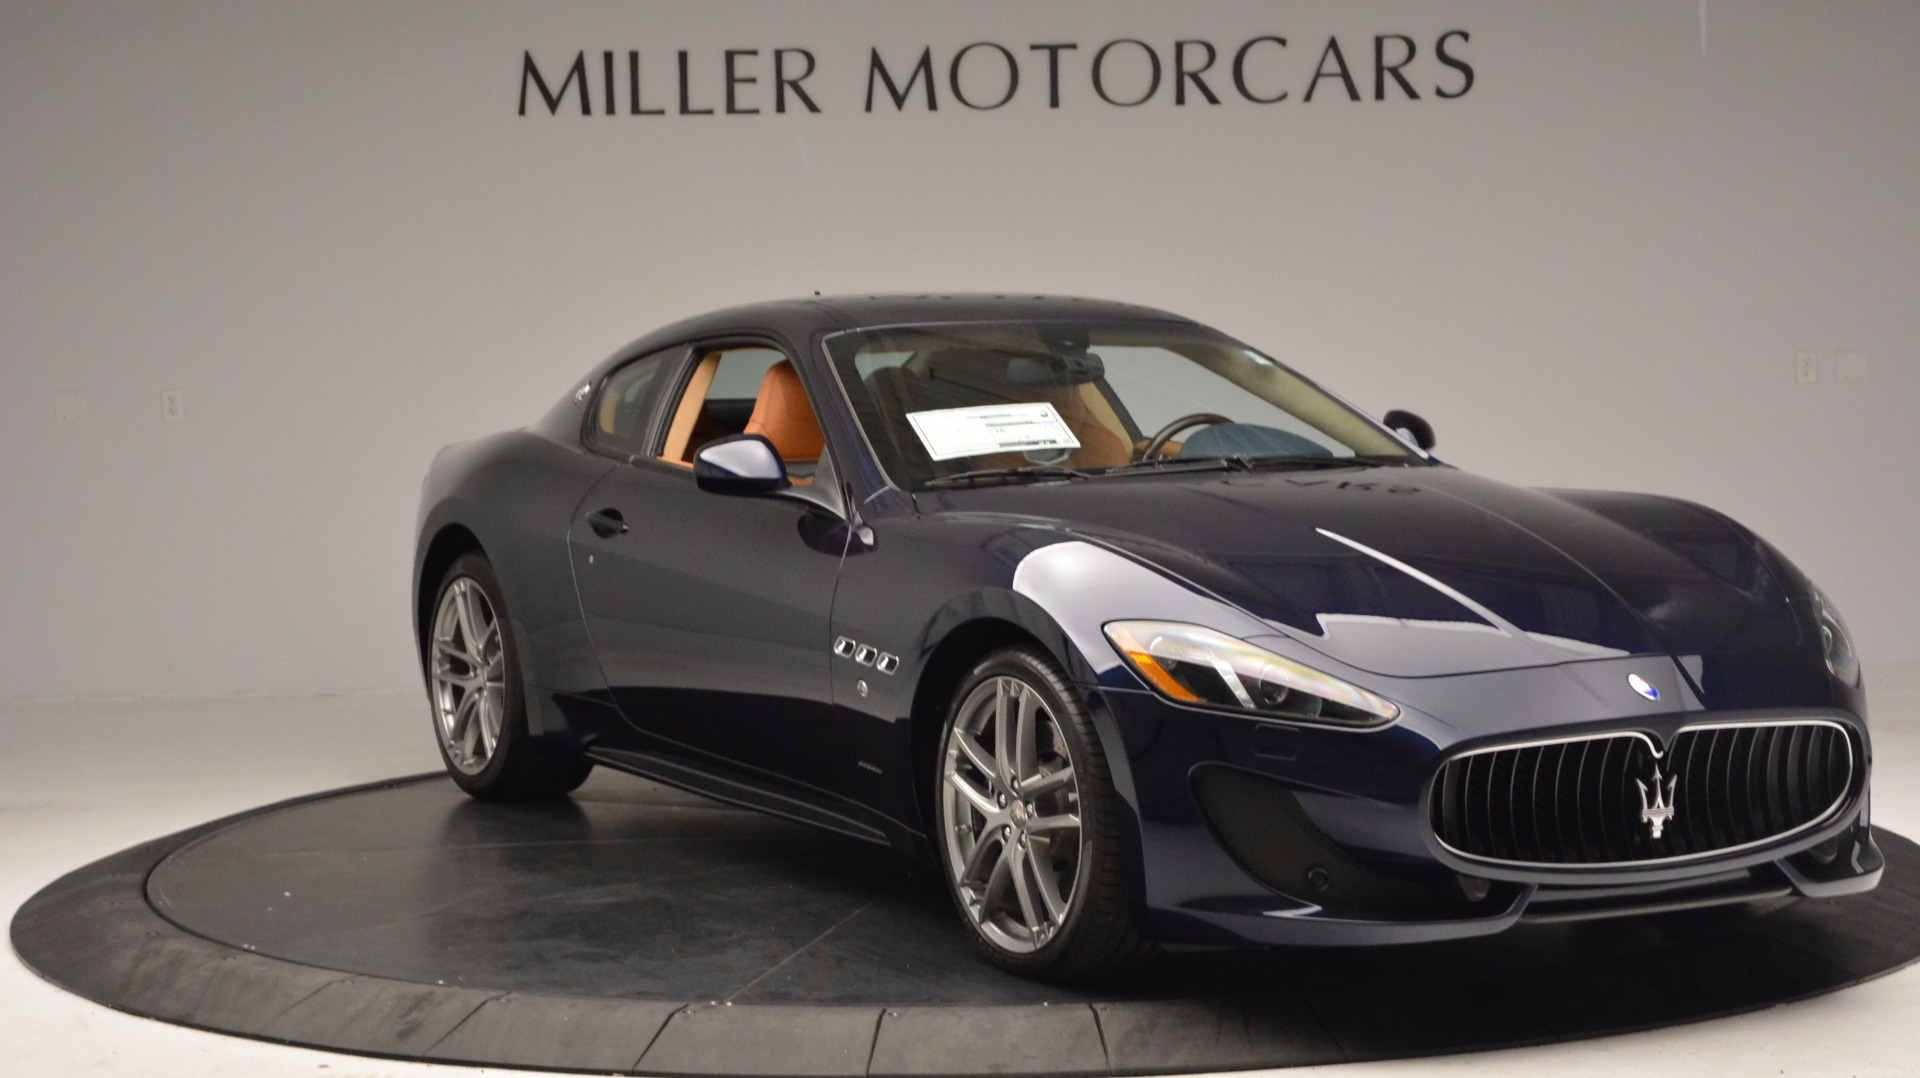 New 2017 Maserati GranTurismo Coupe Sport For Sale In Westport, CT 1295_p11